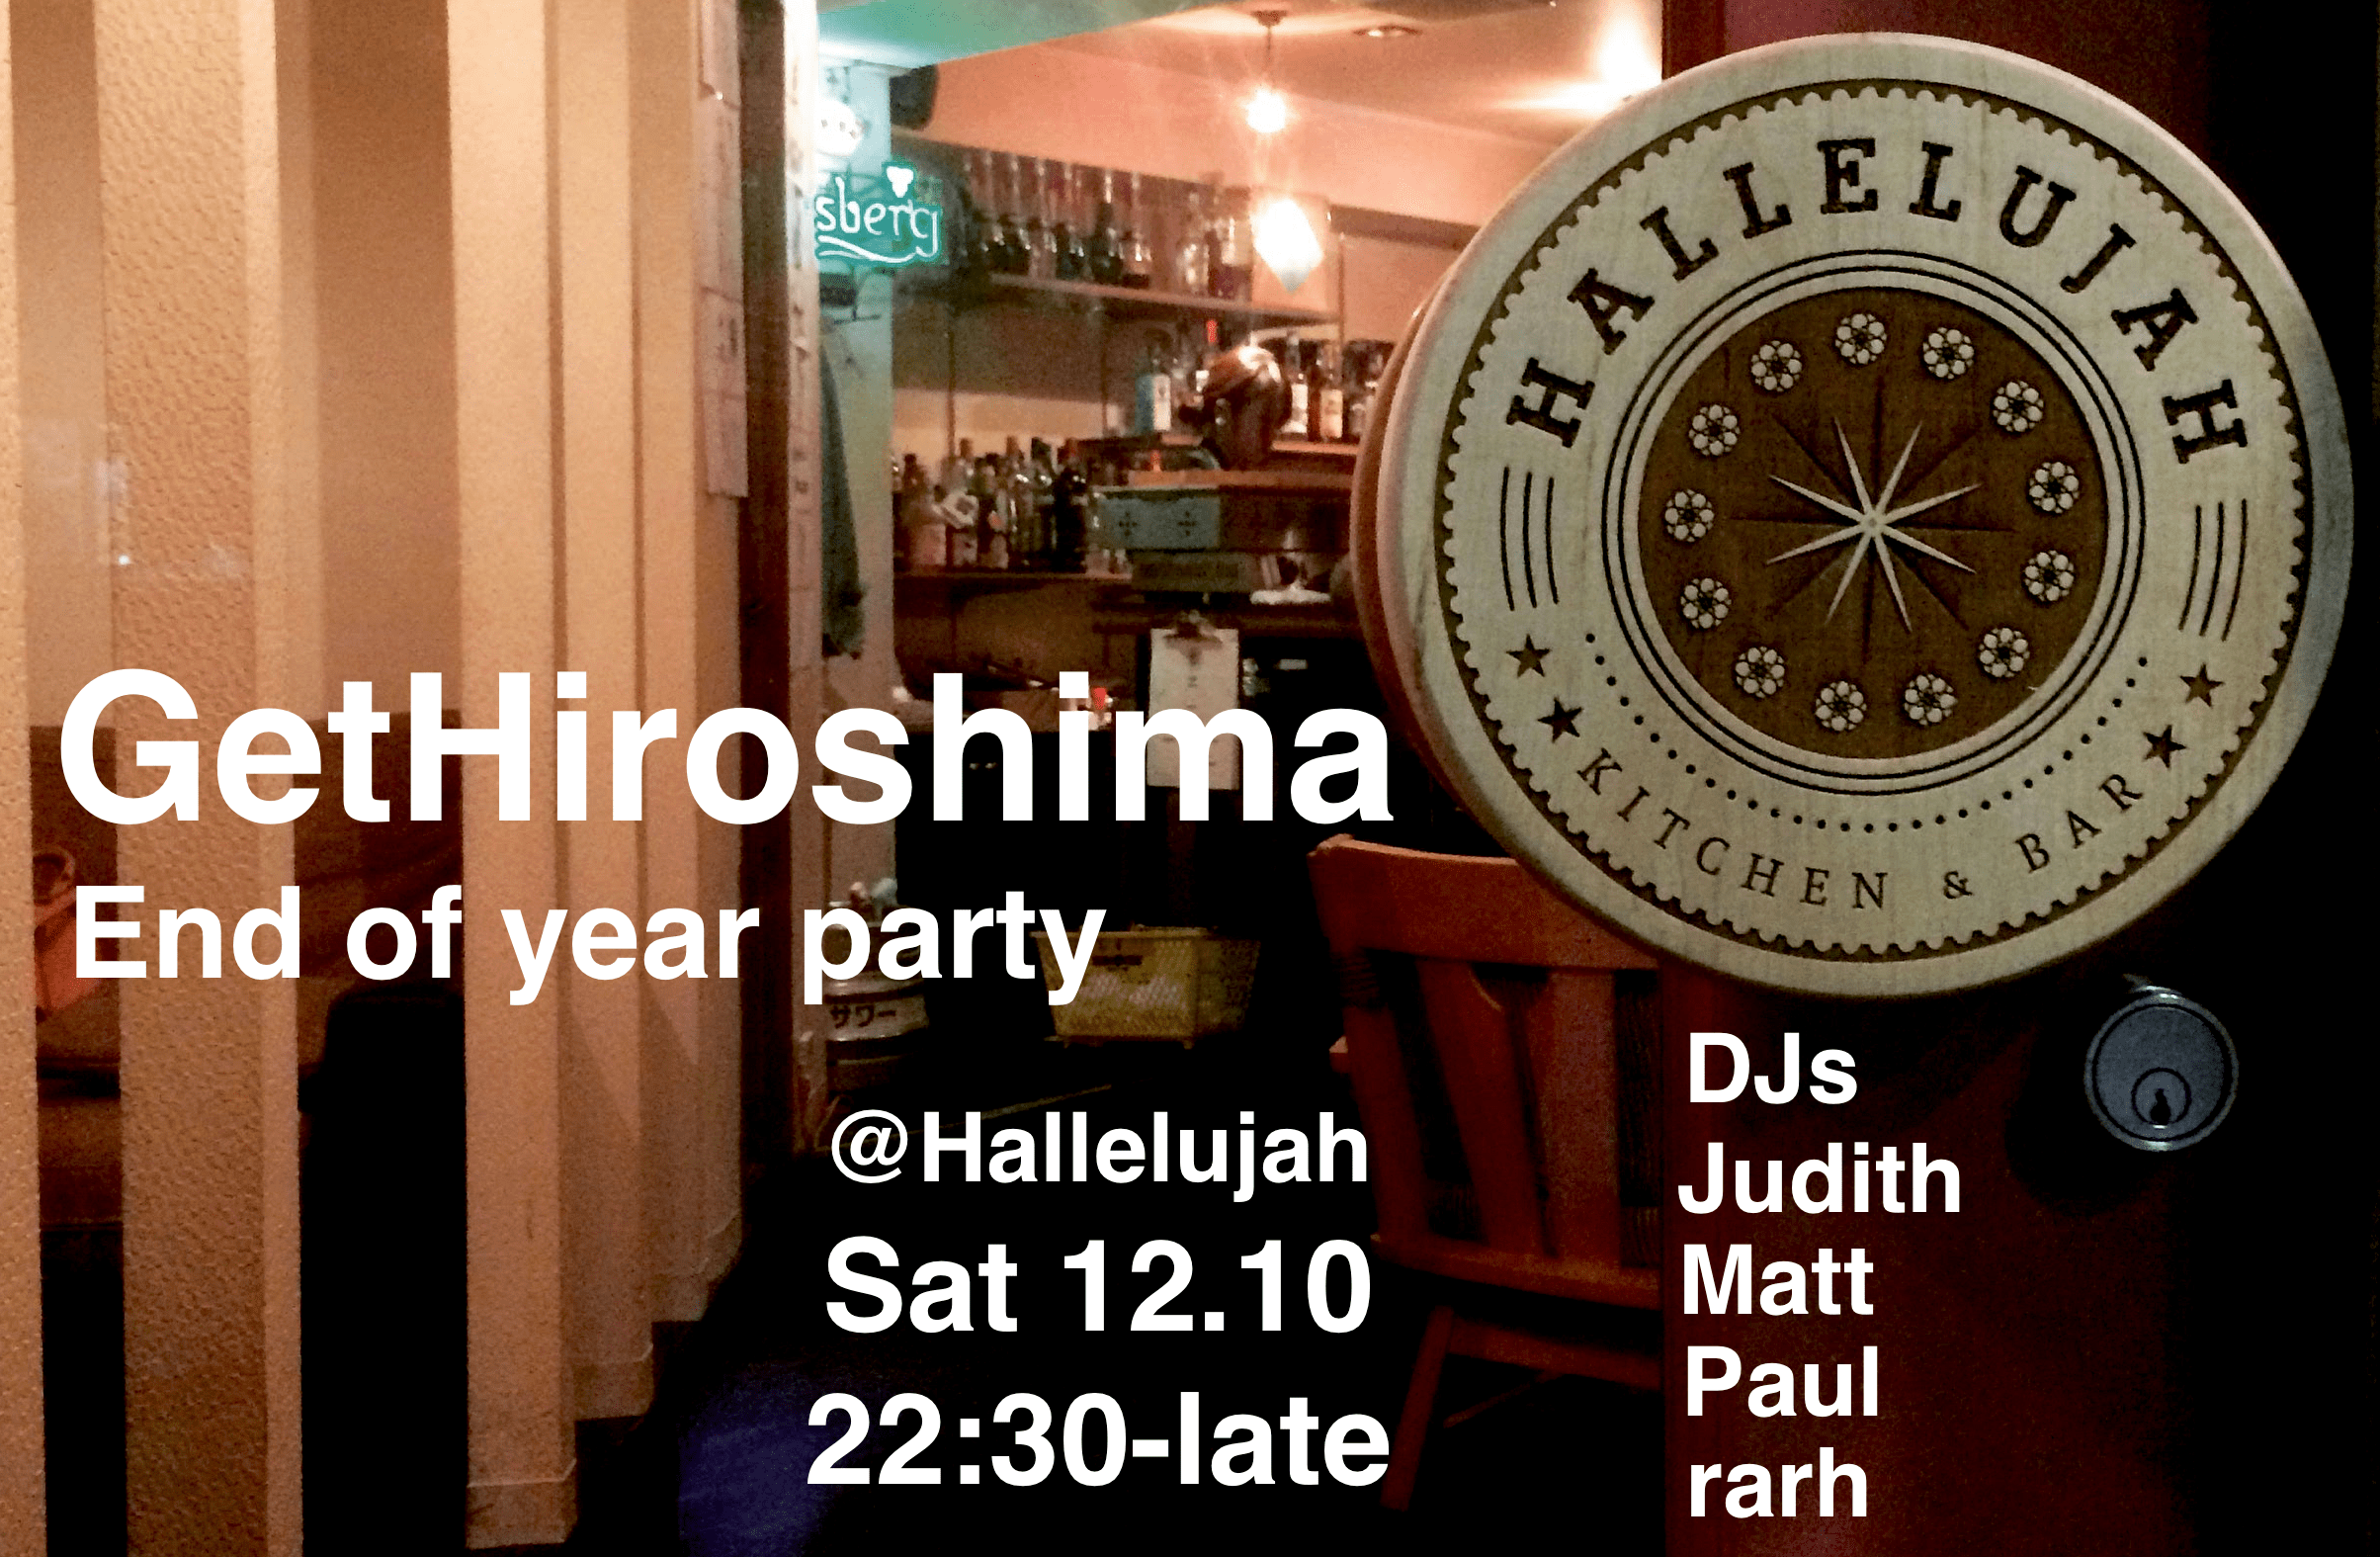 gethiroshima end of year party 2016